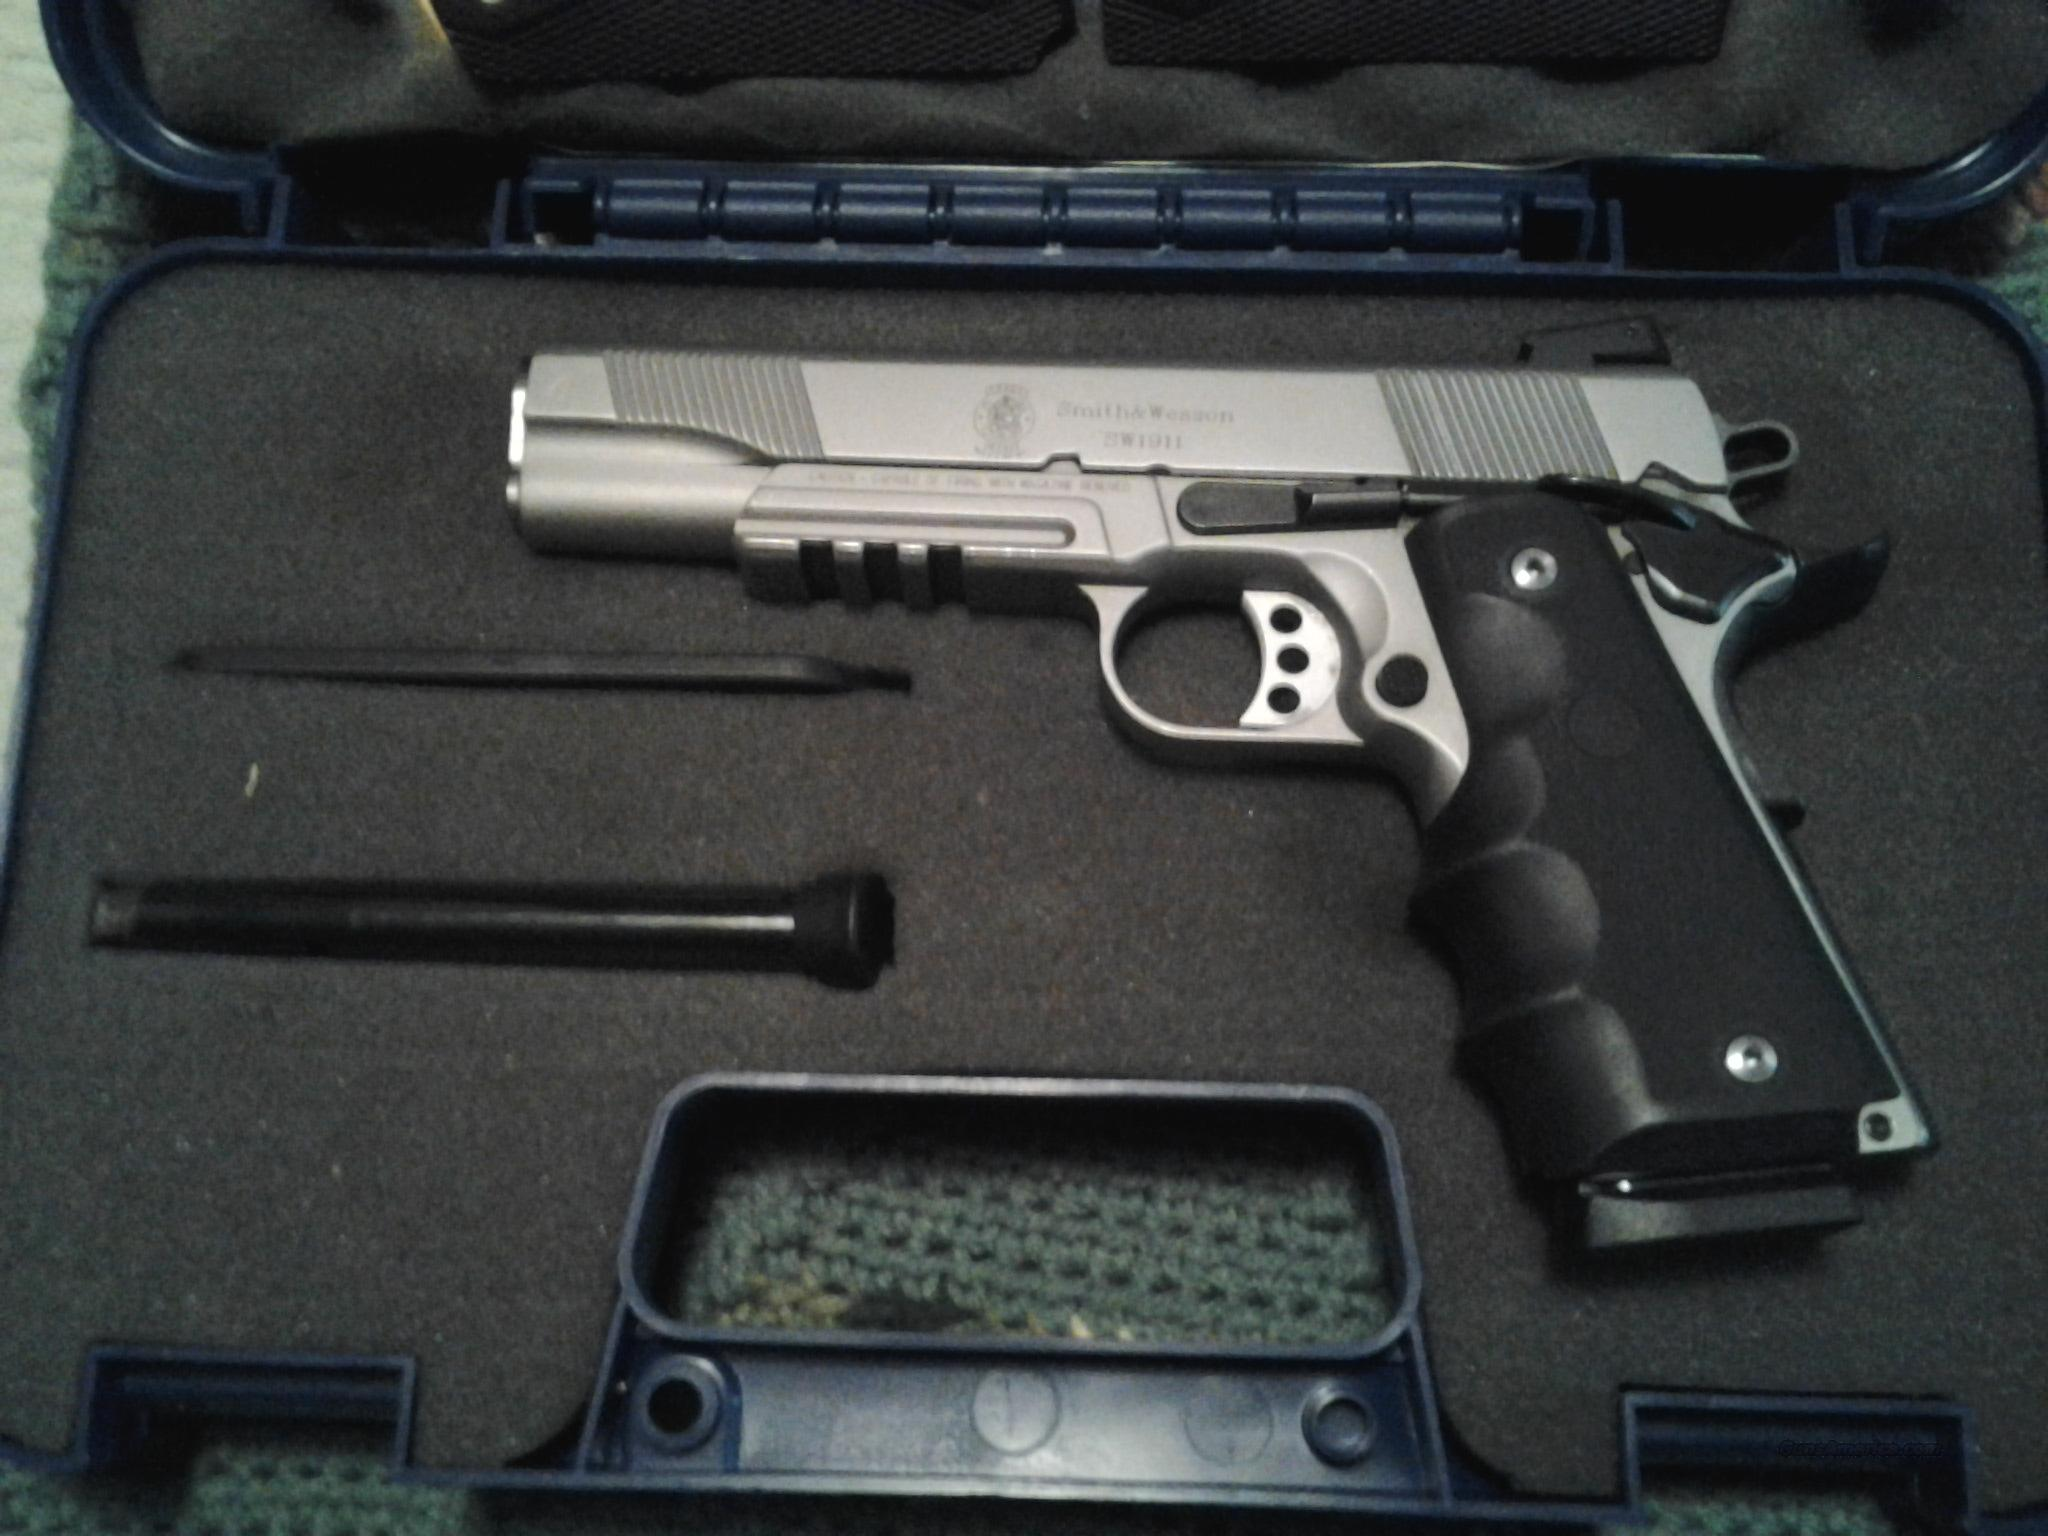 Smith and Wesson 1911 w/rail  Guns > Pistols > Smith & Wesson Pistols - Autos > Steel Frame